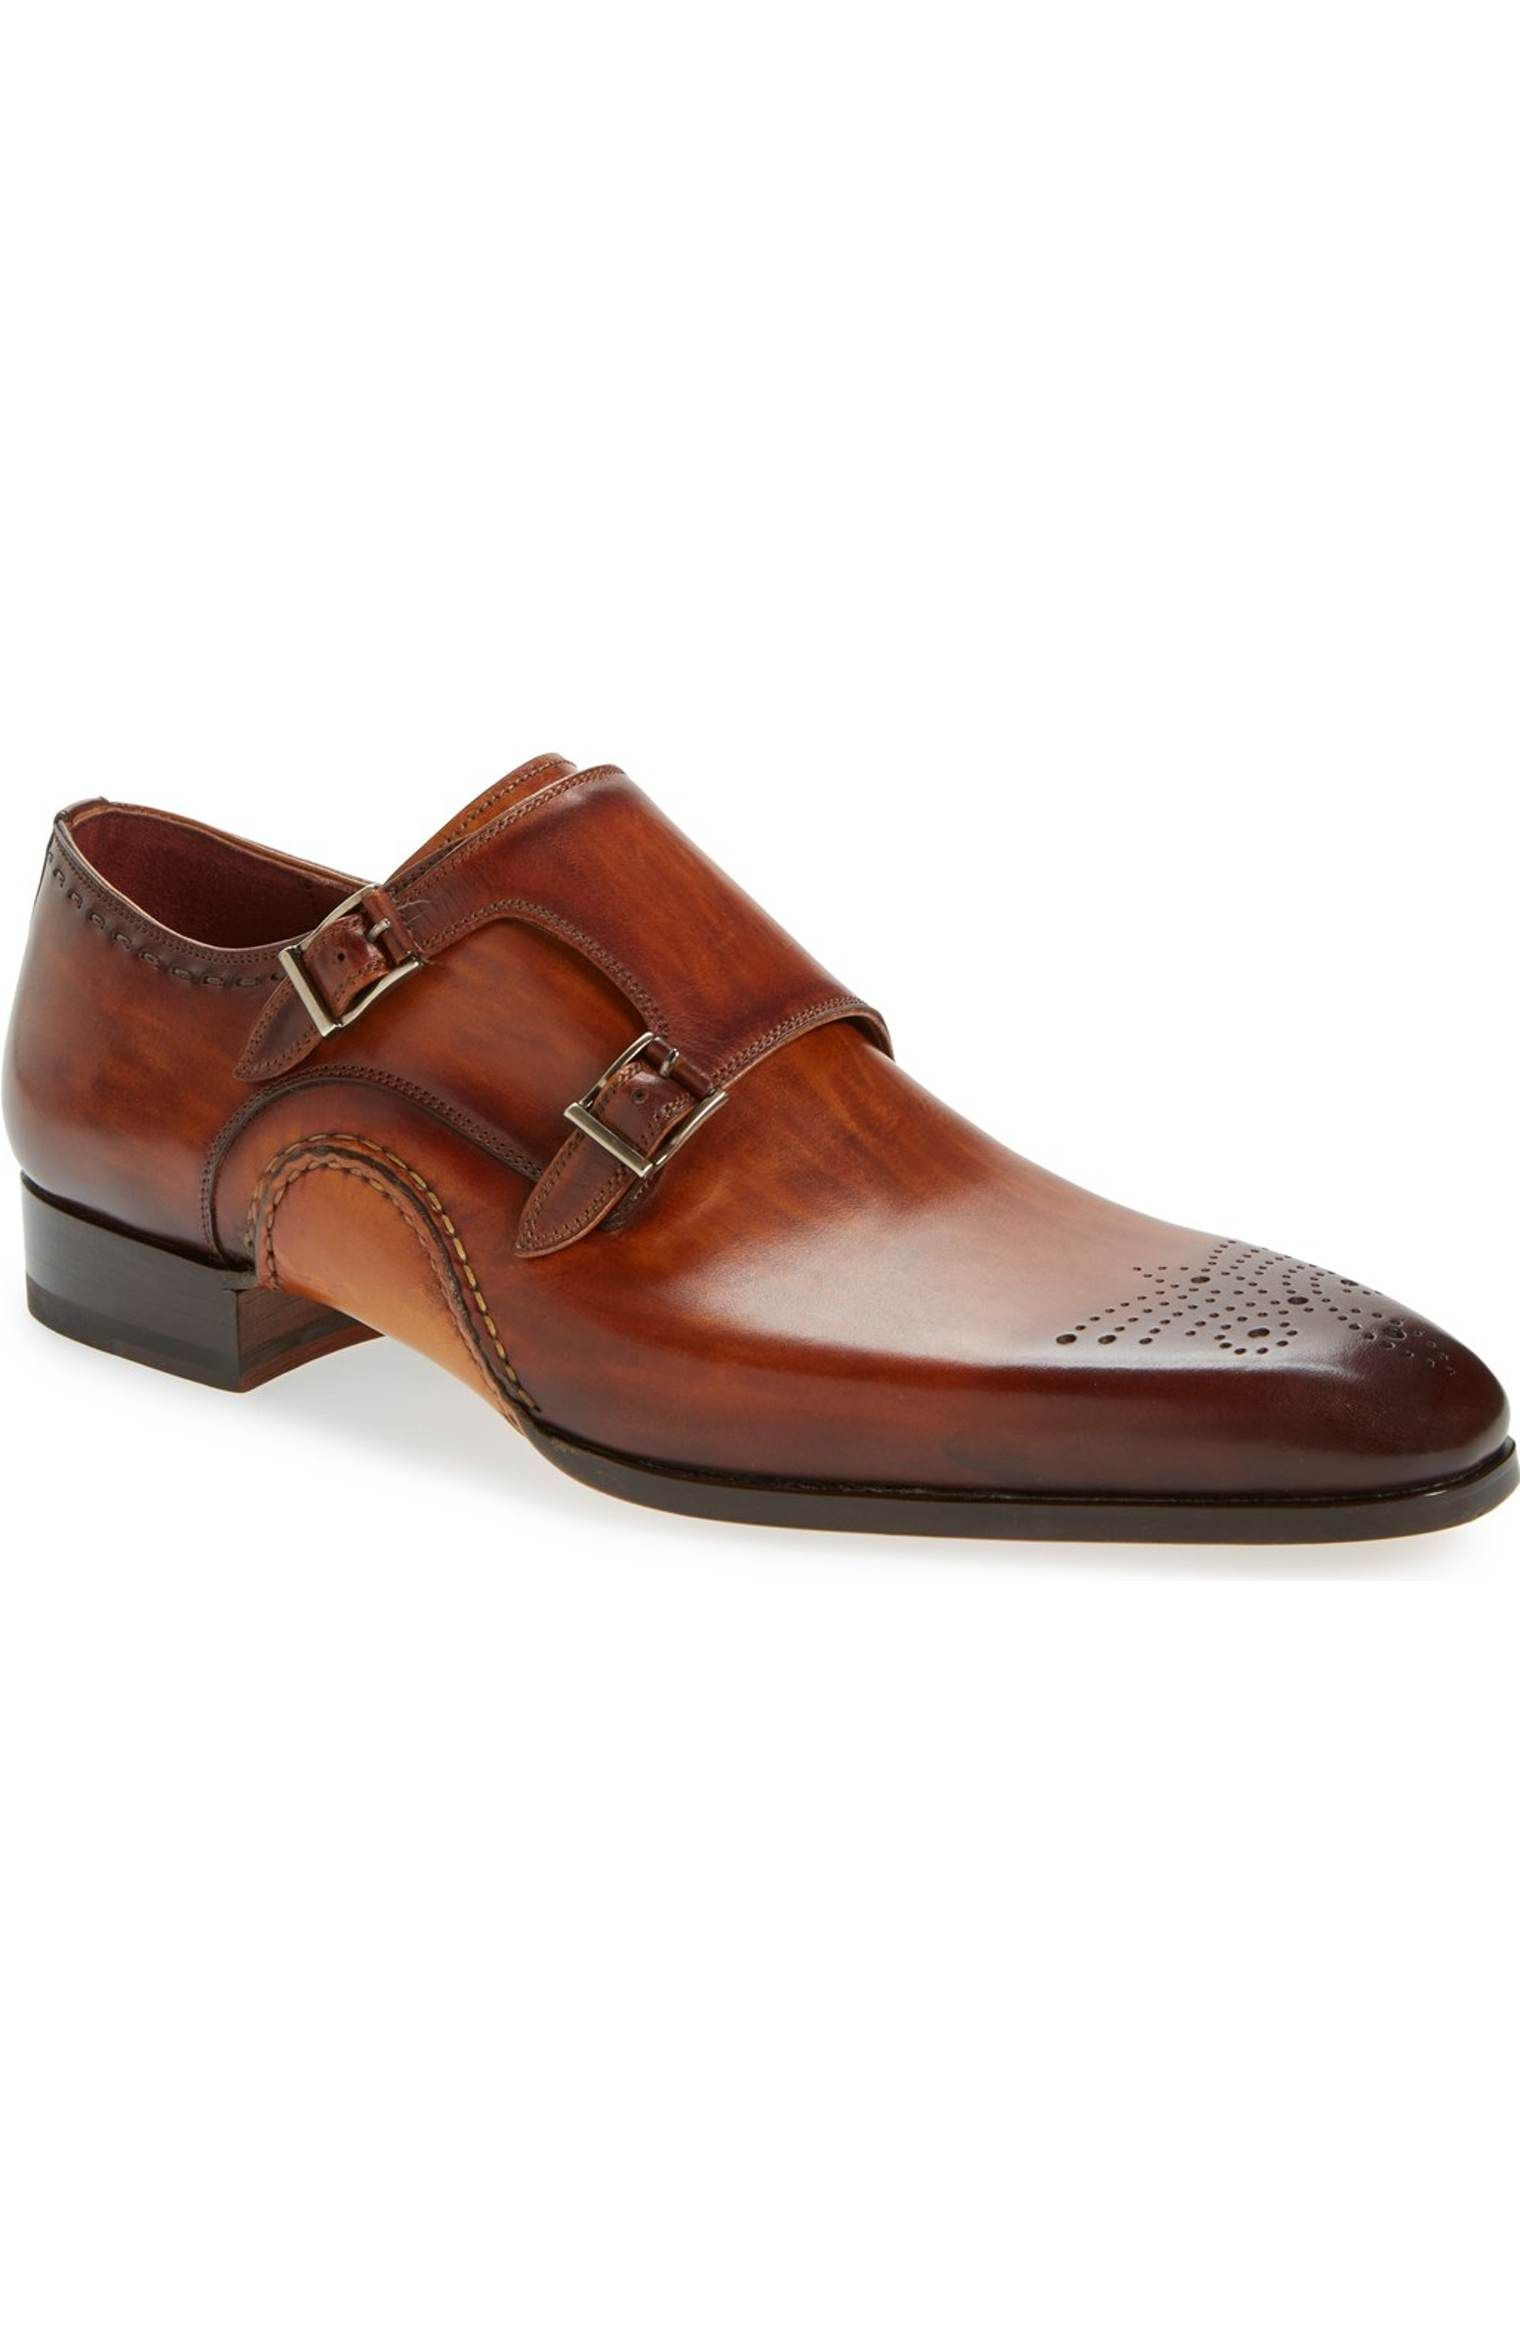 Main Image - Magnanni 'Apolo' Double Monk Strap Shoe (Men)